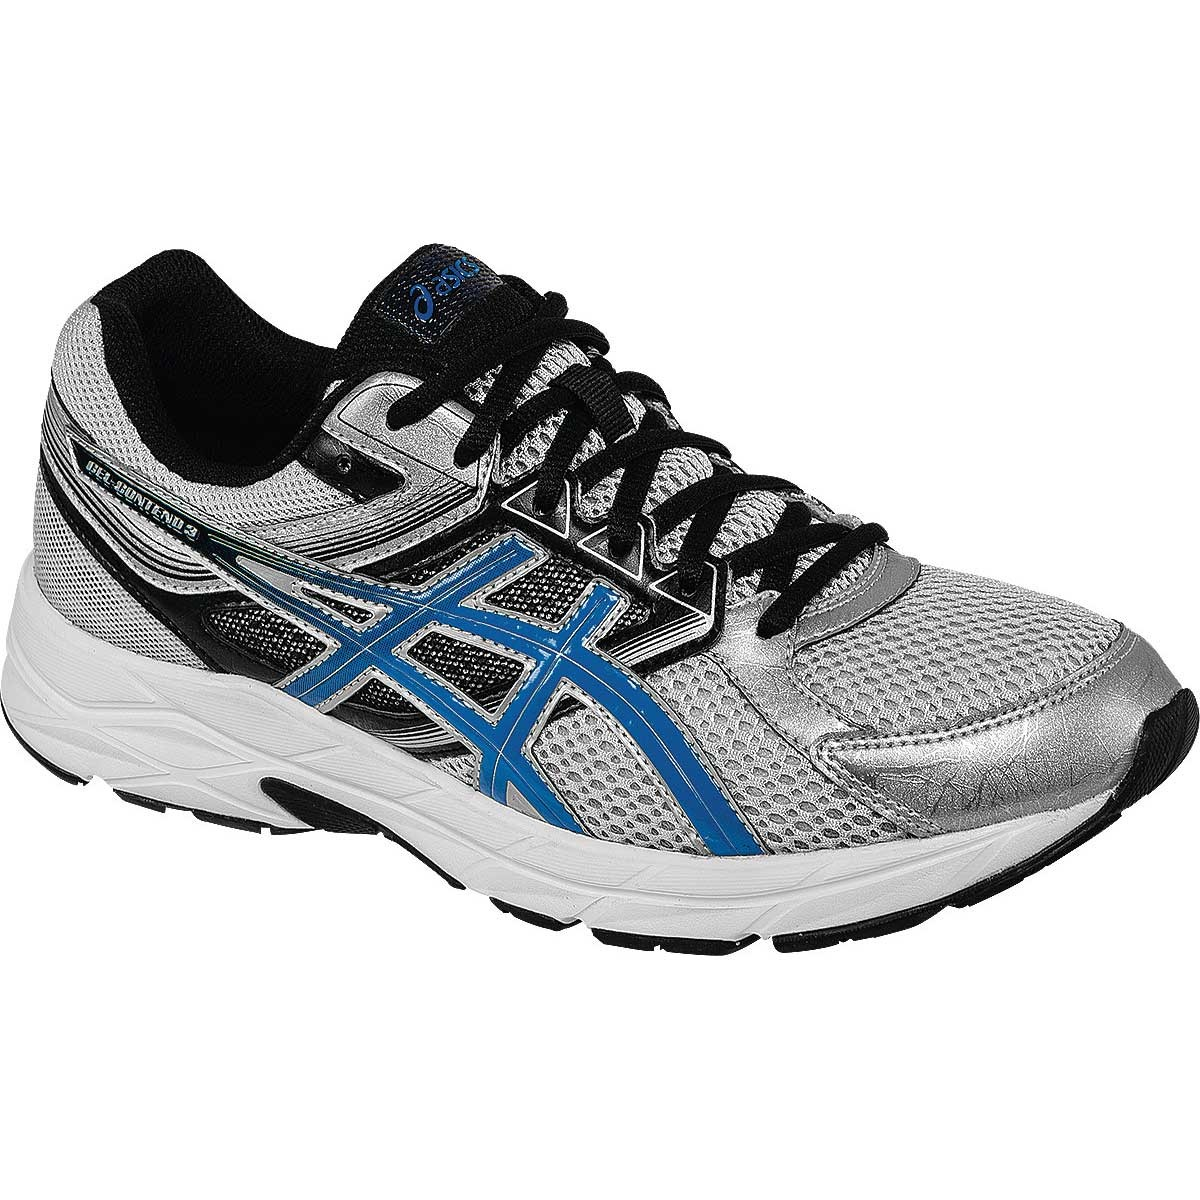 Asics 2015/16 Men's Gel-Contend 3 (4E) Extra Wide Running Shoe - T5G1N.9339 (Silver/Electric Blue/Black - 9H)